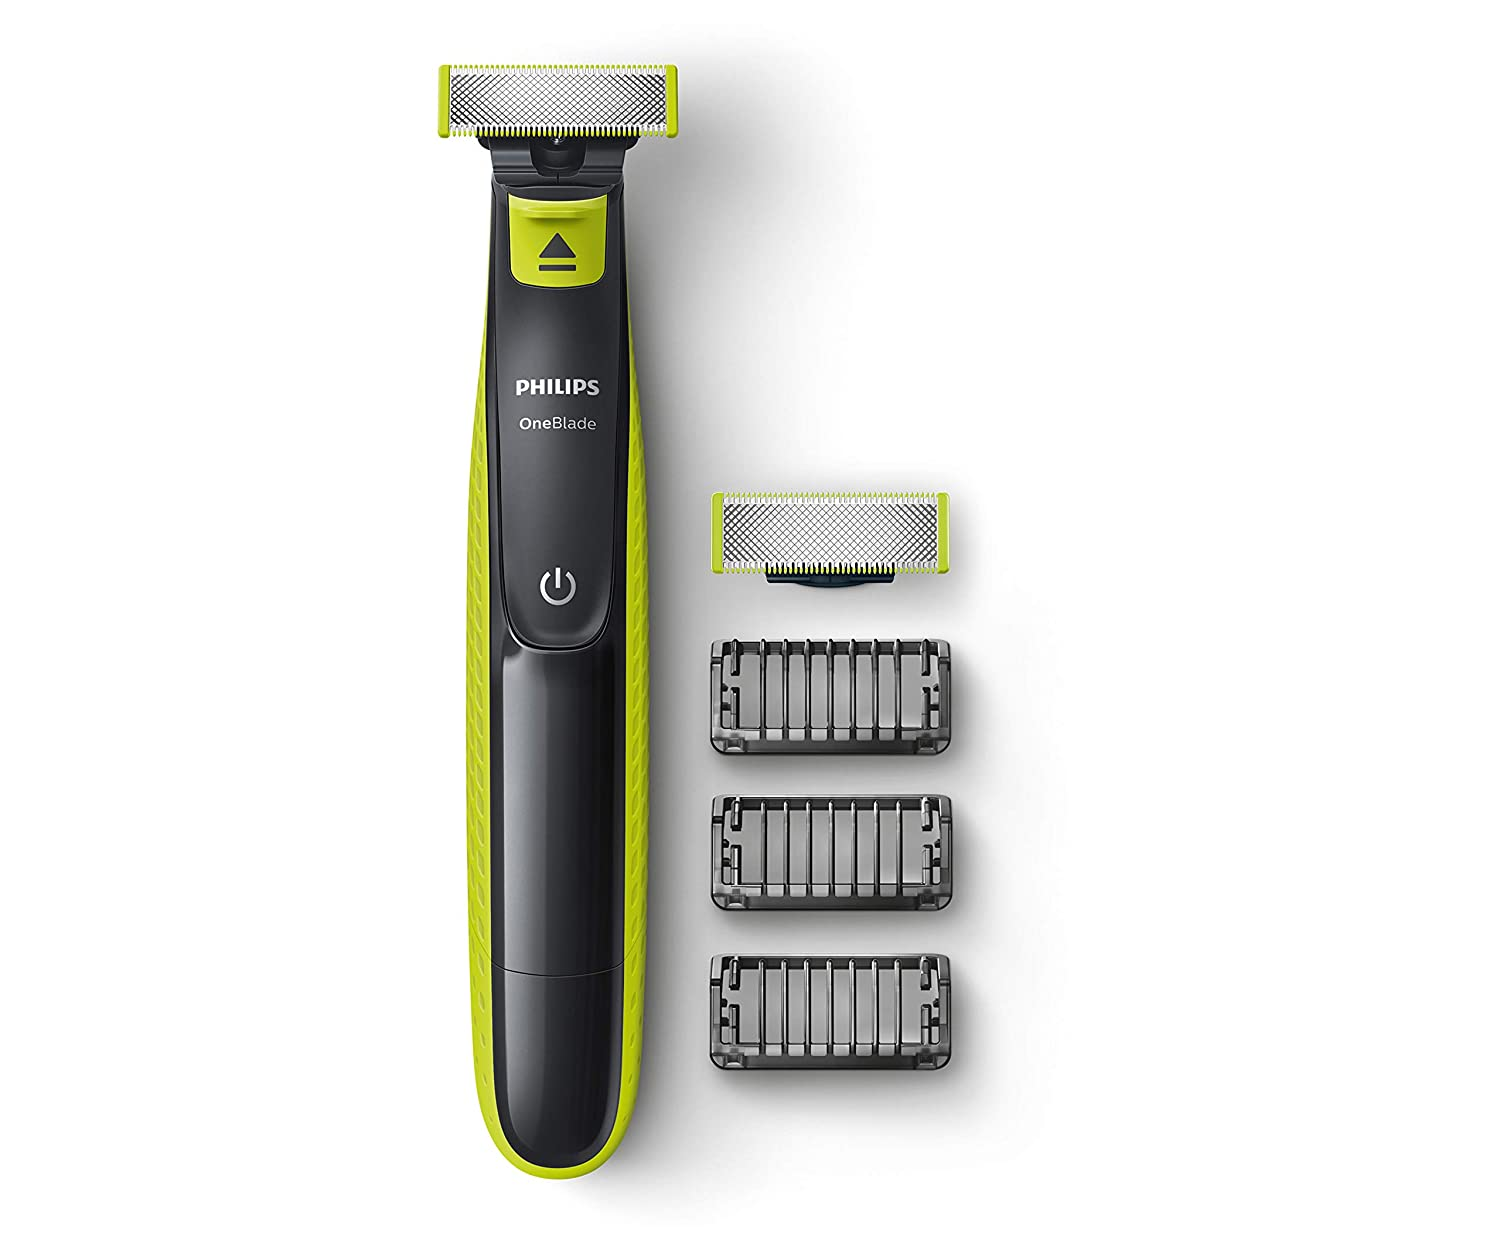 Top 15 Best Trimmer for Men in India Feb 2020 - Reviews & Features